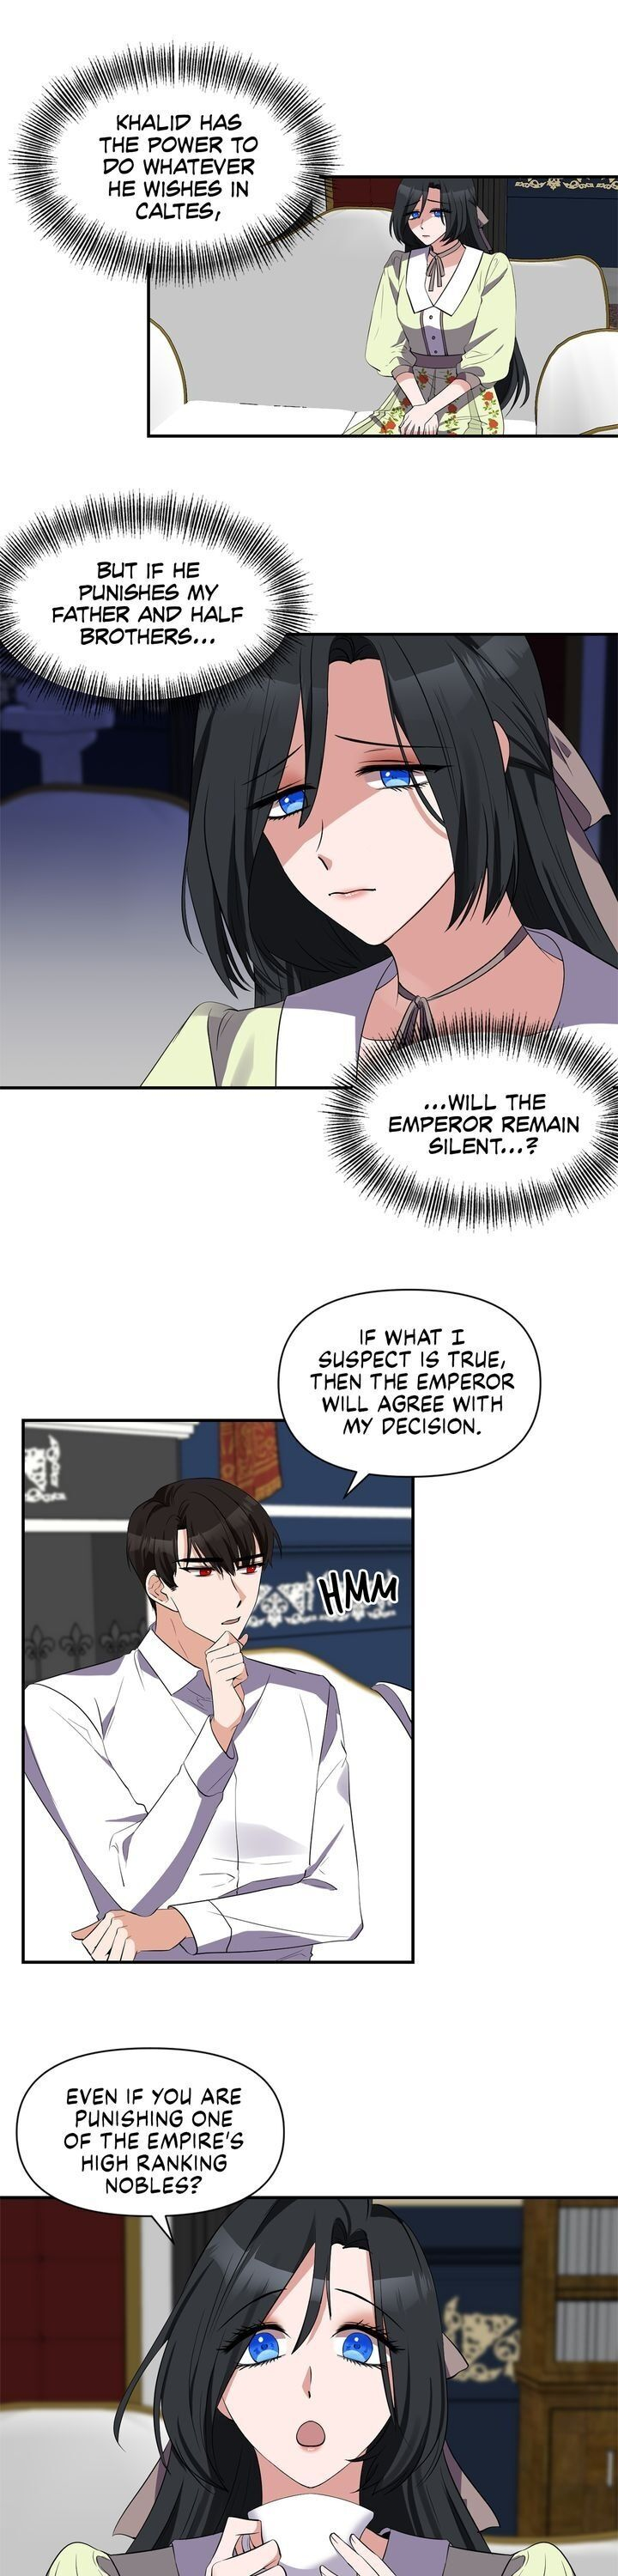 The Tyrant Husband Has Changed - chapter 18 - #1